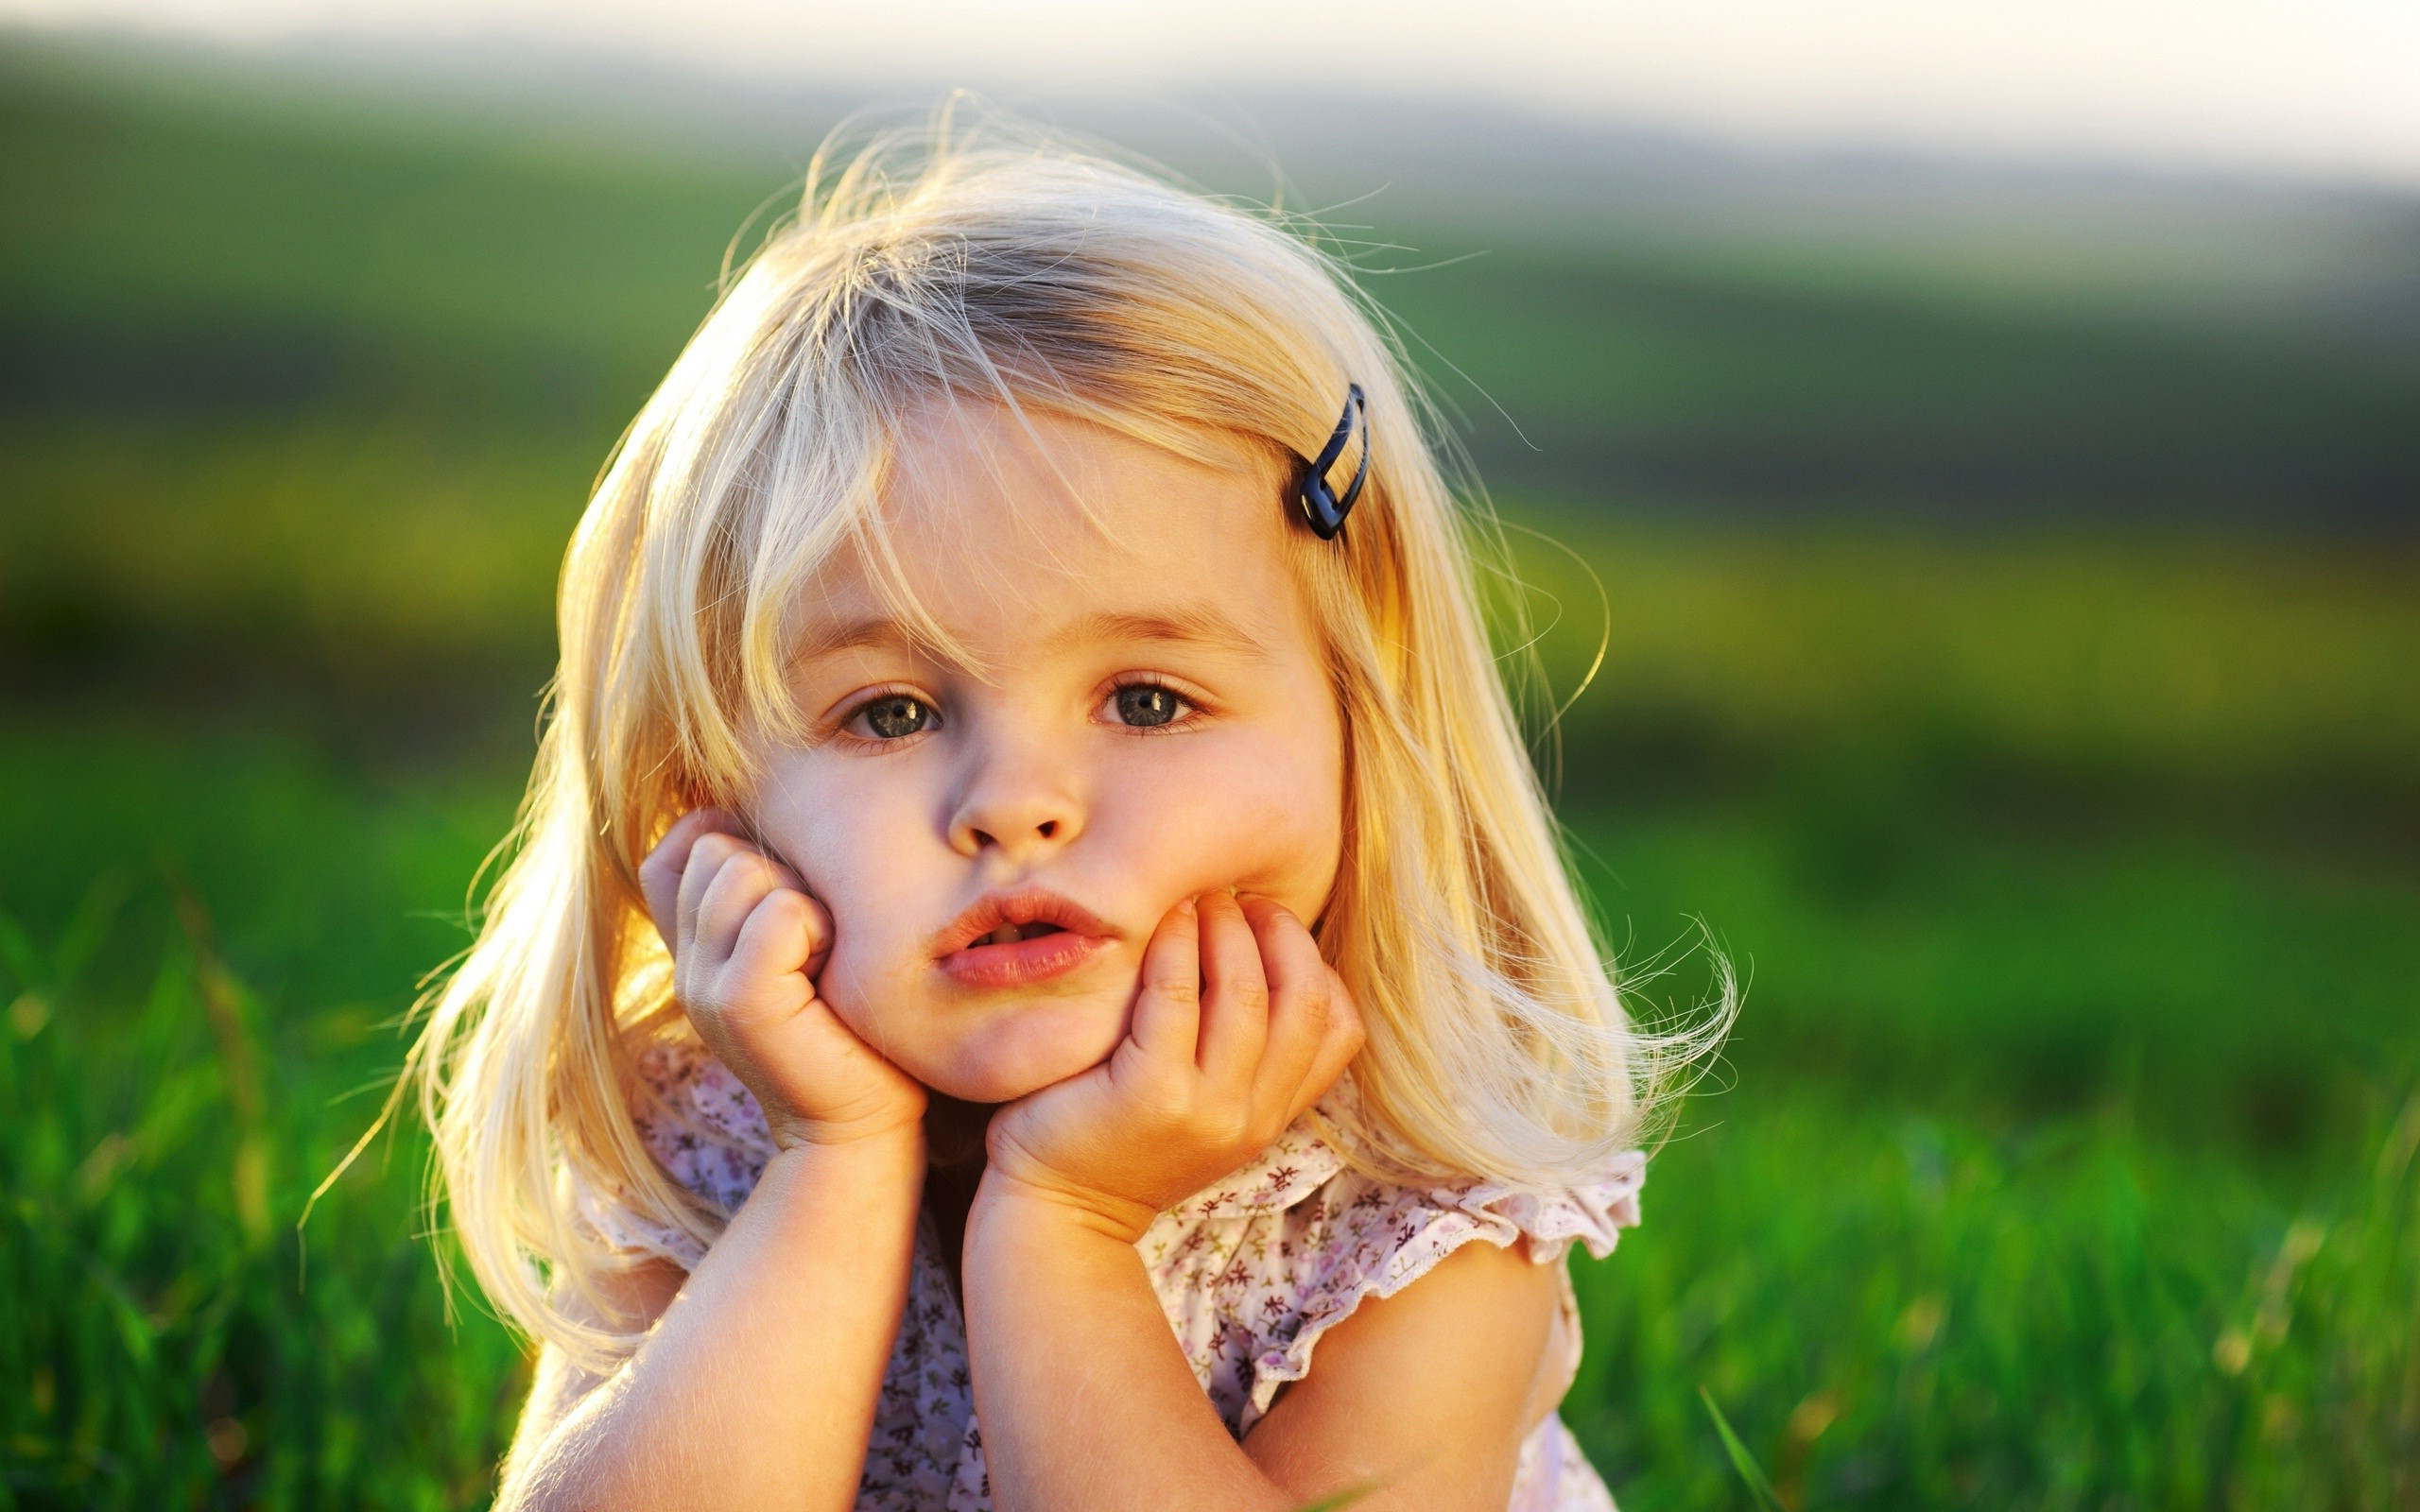 Download Free Small Cute Babies Wallpapers The Quotes Land: Wallpaper Baby Angels (50+ Images